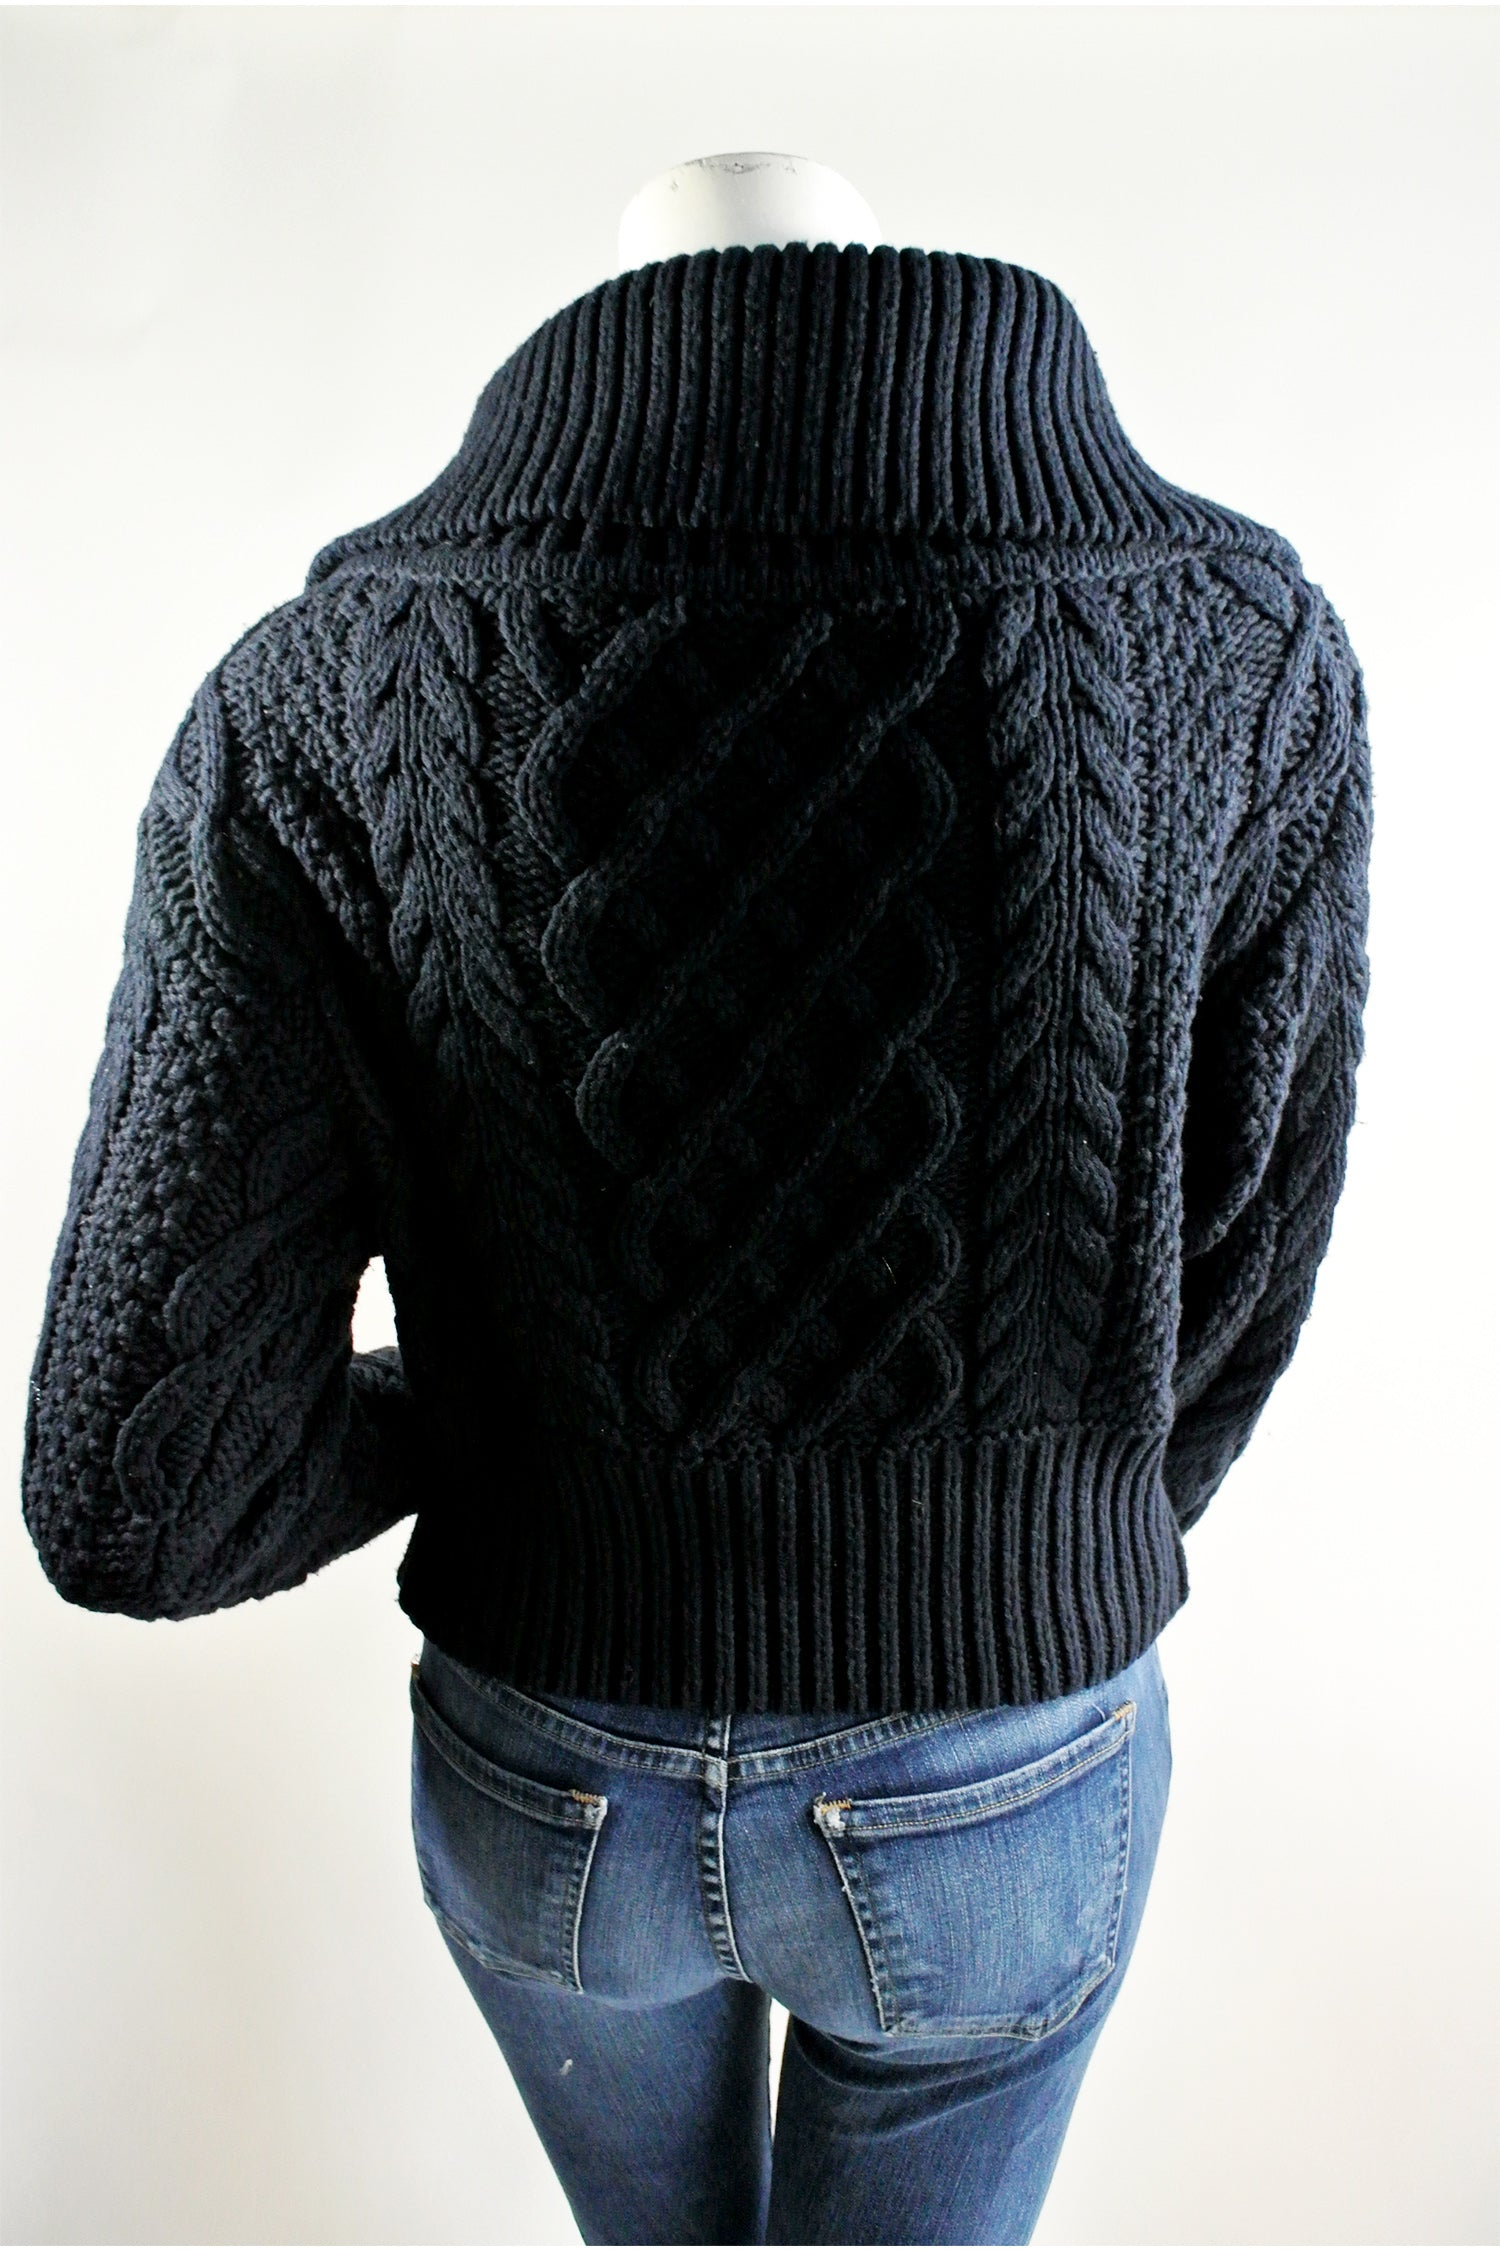 Self Portrait Zipped Cableknit Cardigan Sz S 2018